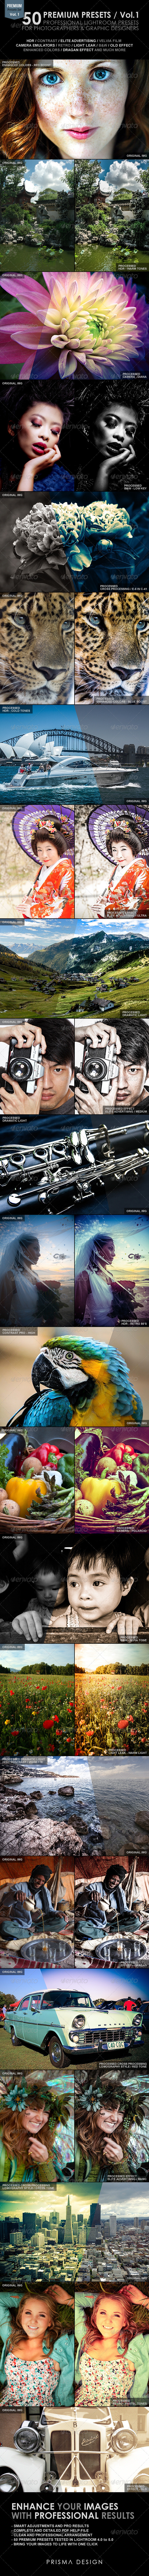 50 Premium Lightroom Presets / Vol.1 - Lightroom Presets Add-ons